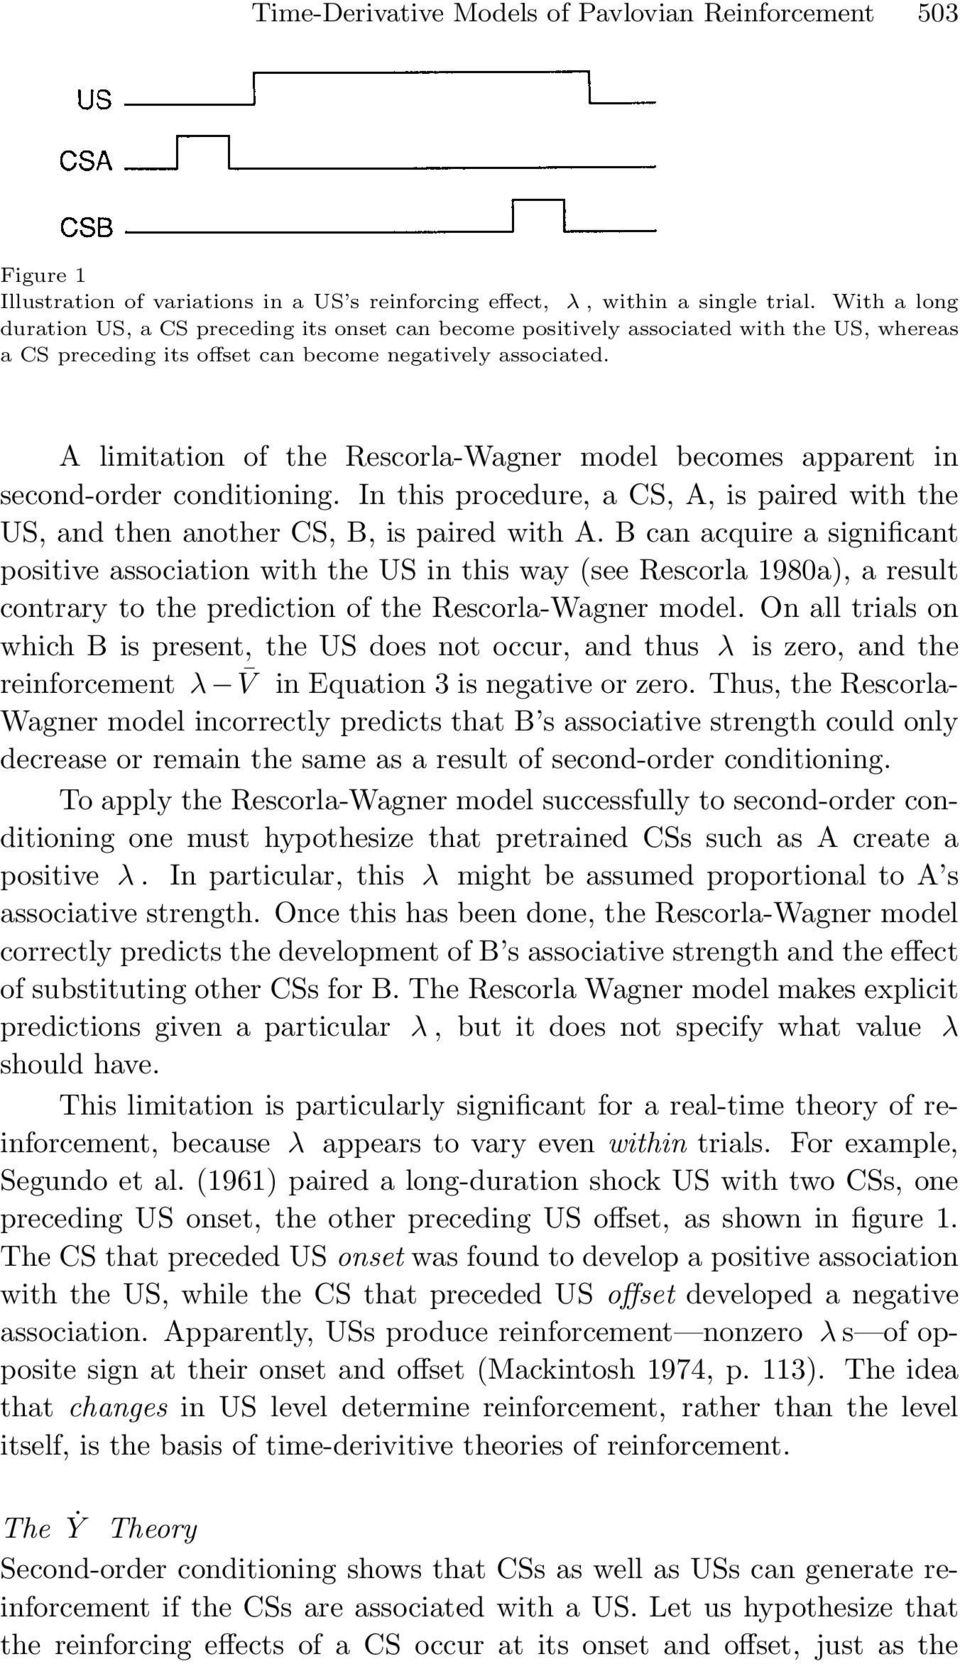 A limitation of the Rescorla-Wagner model becomes apparent in second-order conditioning. In this procedure, a CS, A, is paired with the US, and then another CS, B, is paired with A.